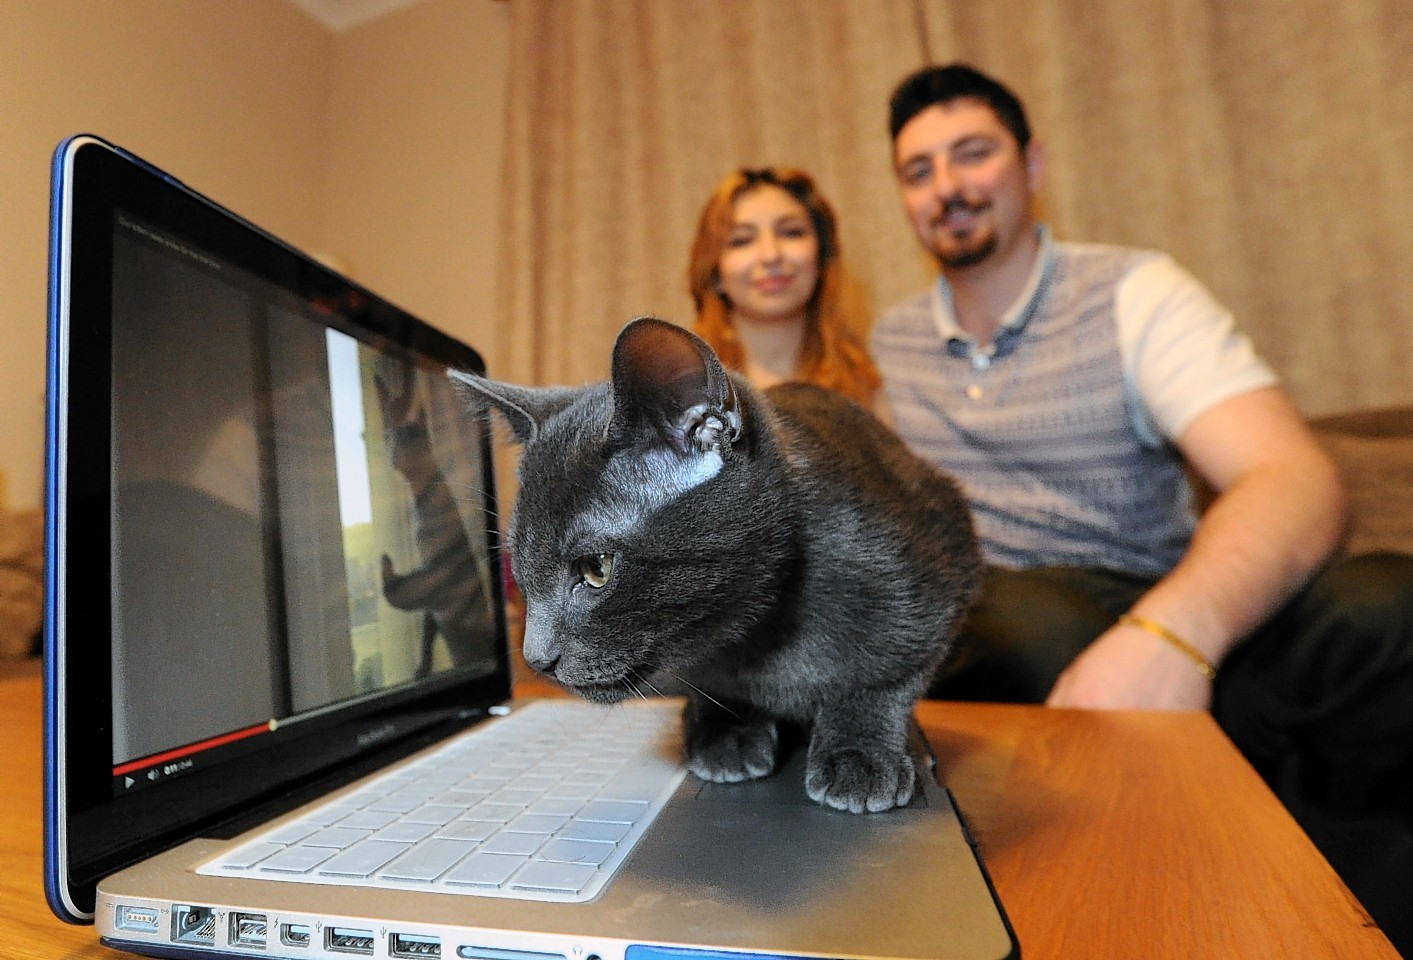 Zoofi has become an internet sensation since the video was uploaded onto YouTube